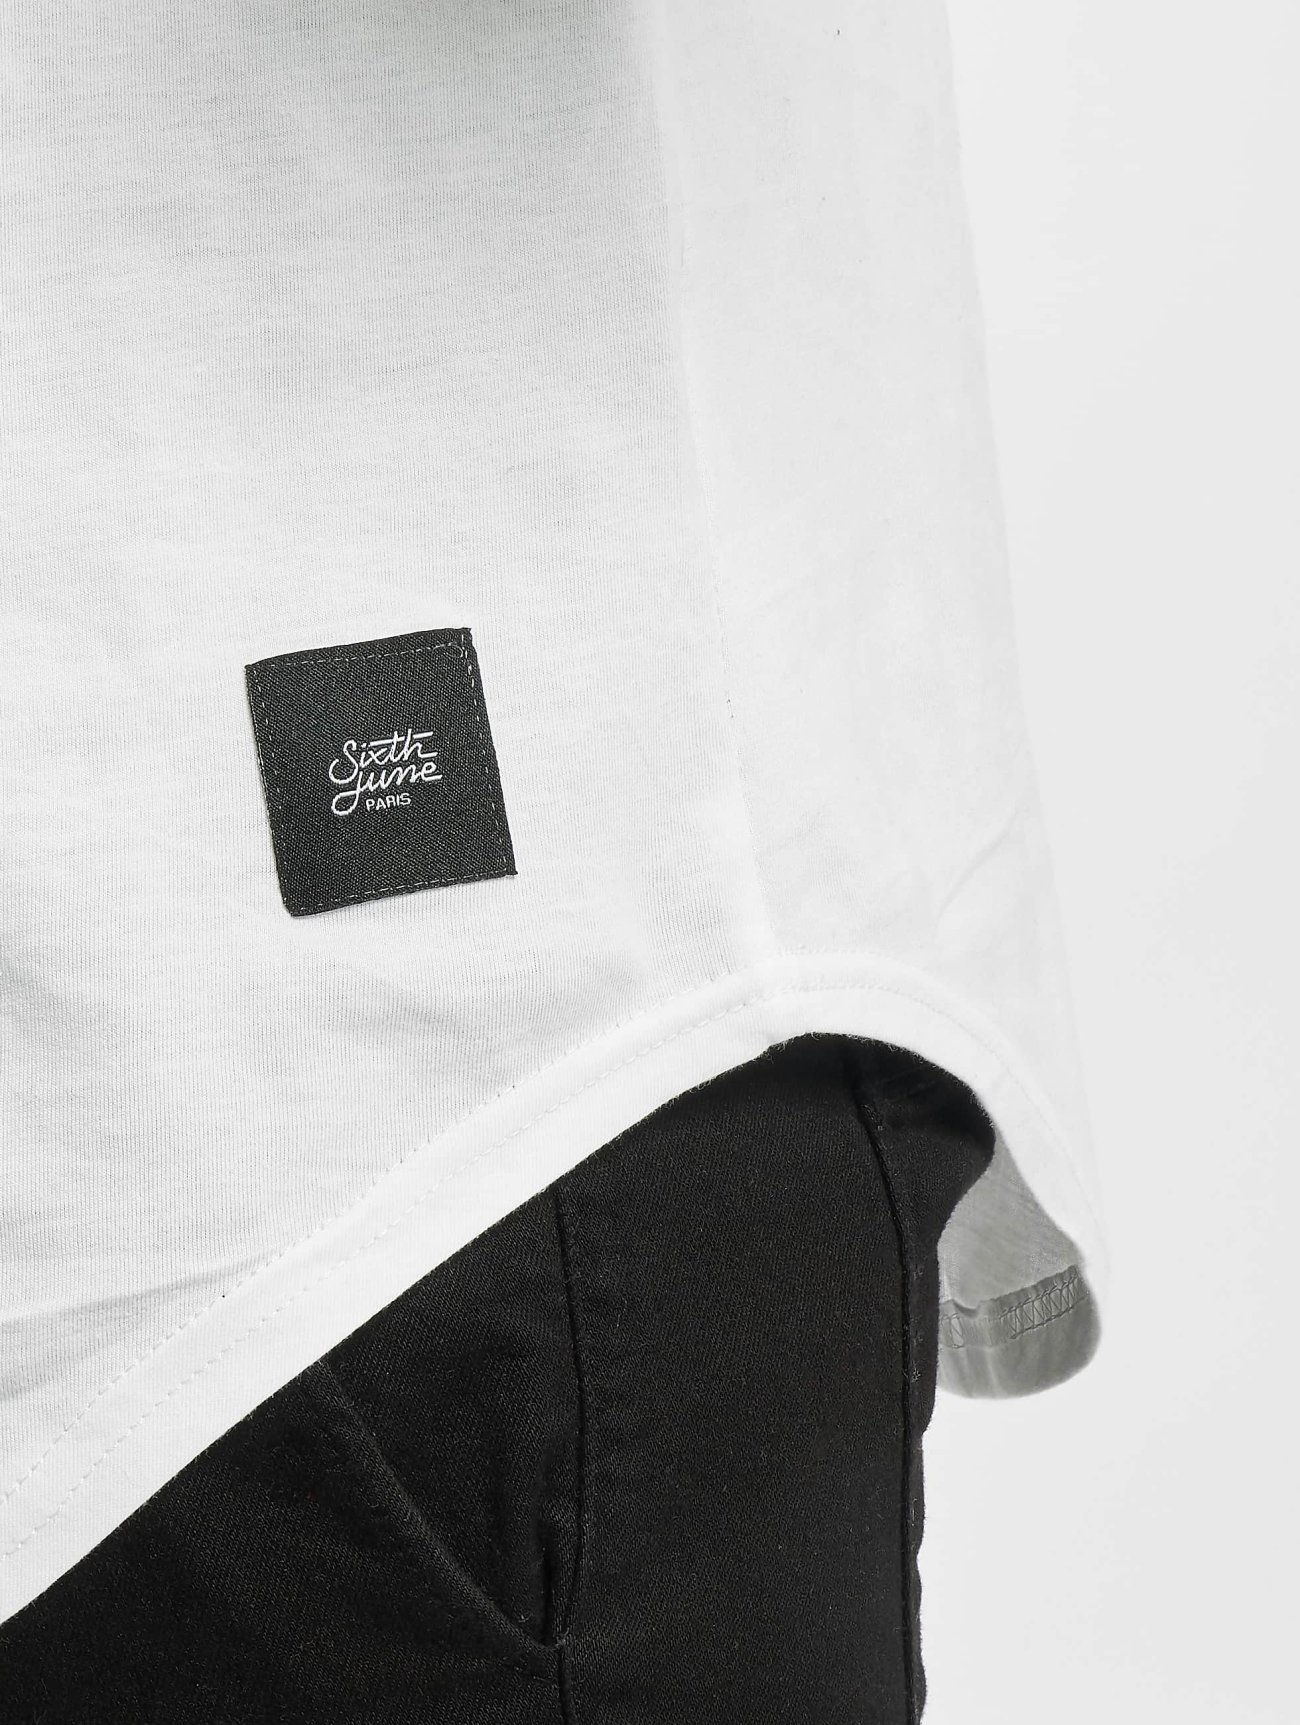 Sixth June | Rounded Bottom blanc Homme T-shirt long oversize 307569| Homme Hauts